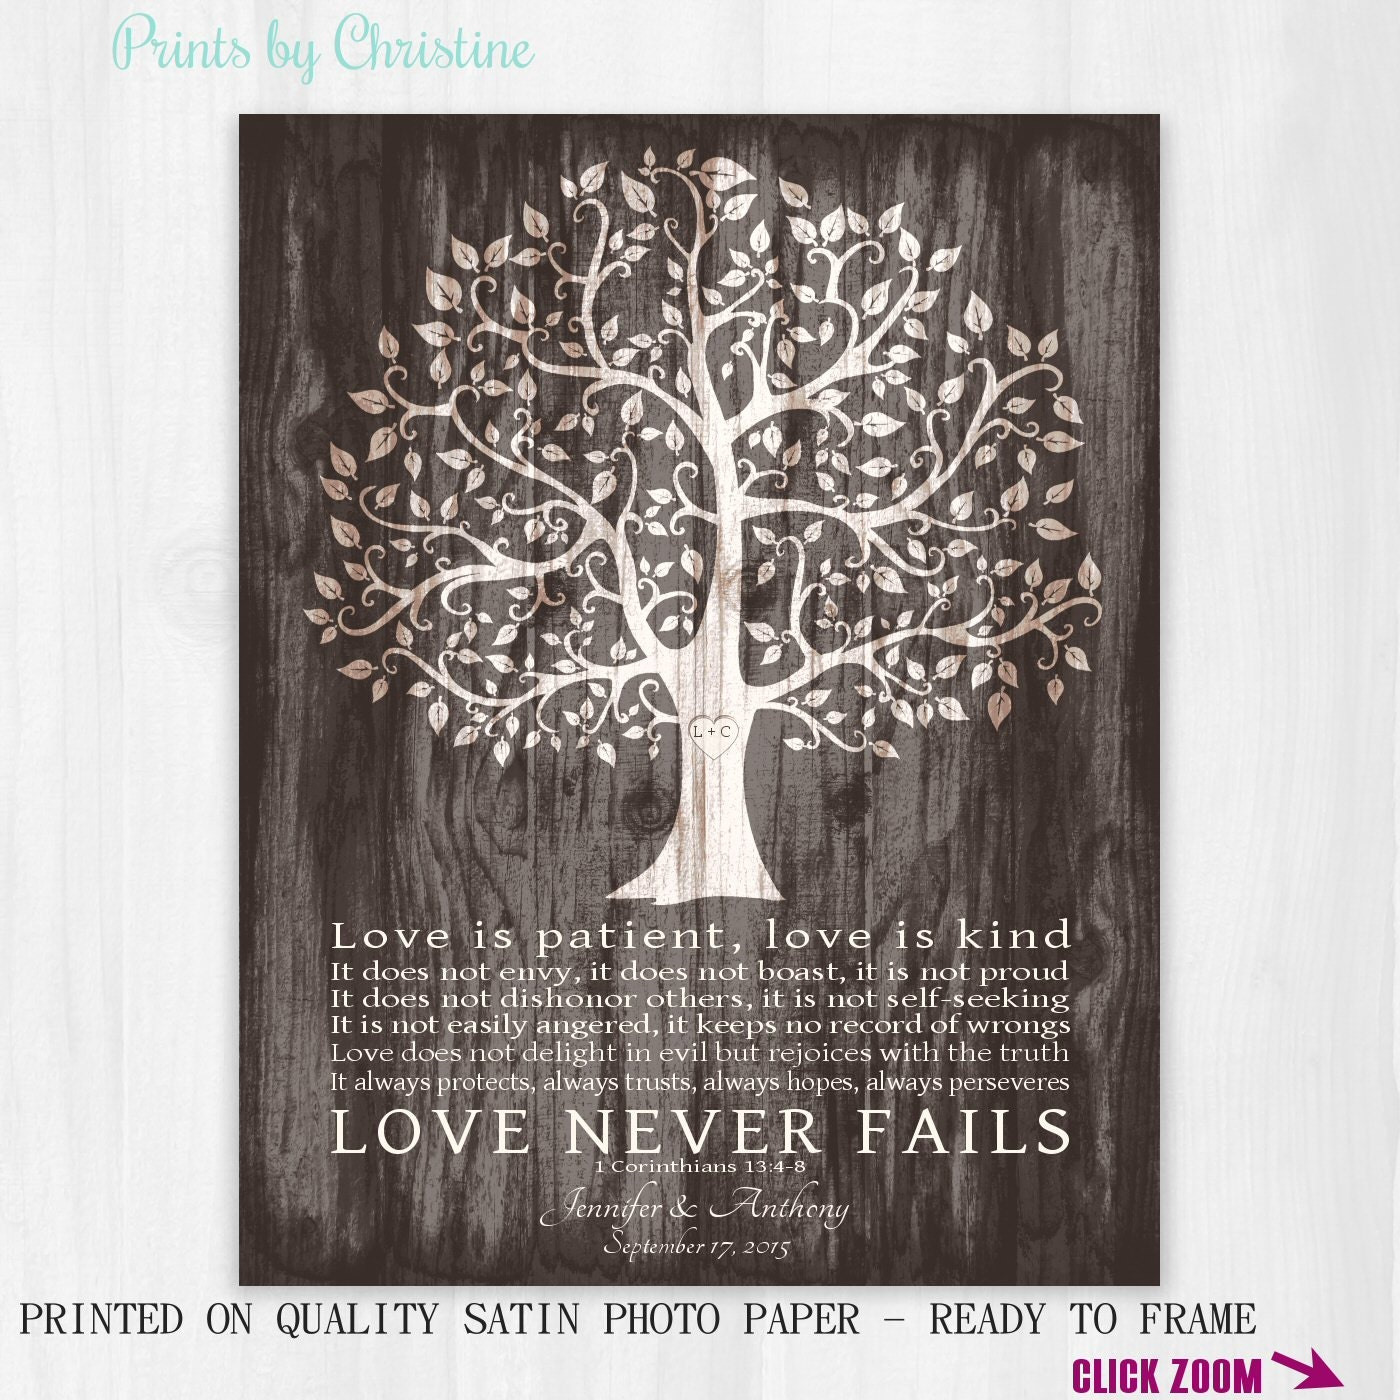 Personalized Wedding Gifts For The Couple : Personalized Wedding Gift for Couple Love is Patient Print 1